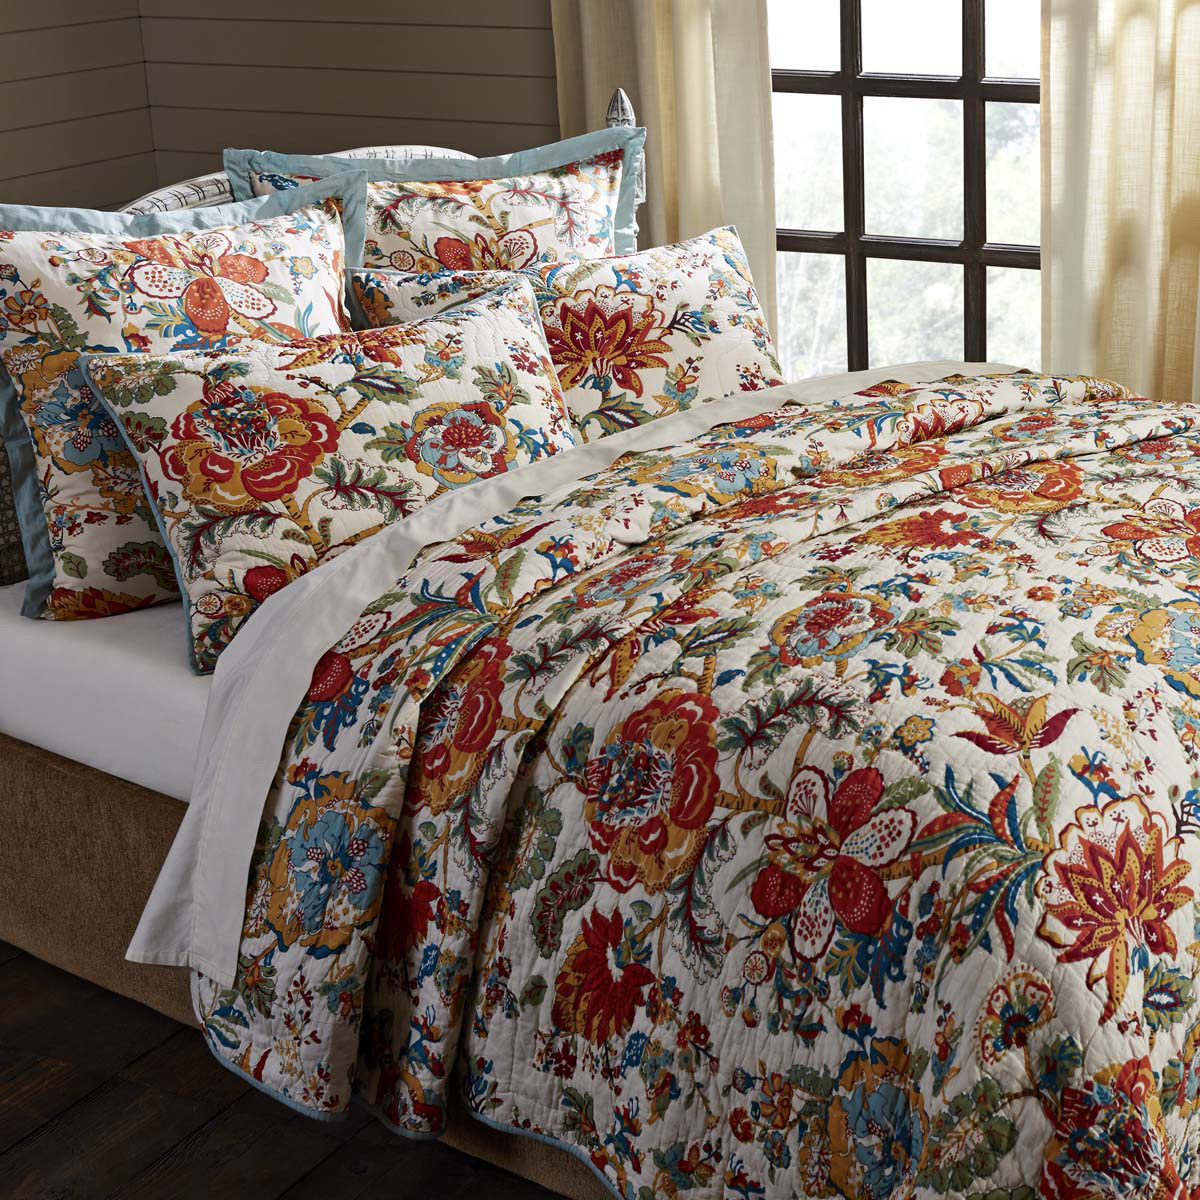 Meredith Floral Quilt, by VHC Brands.